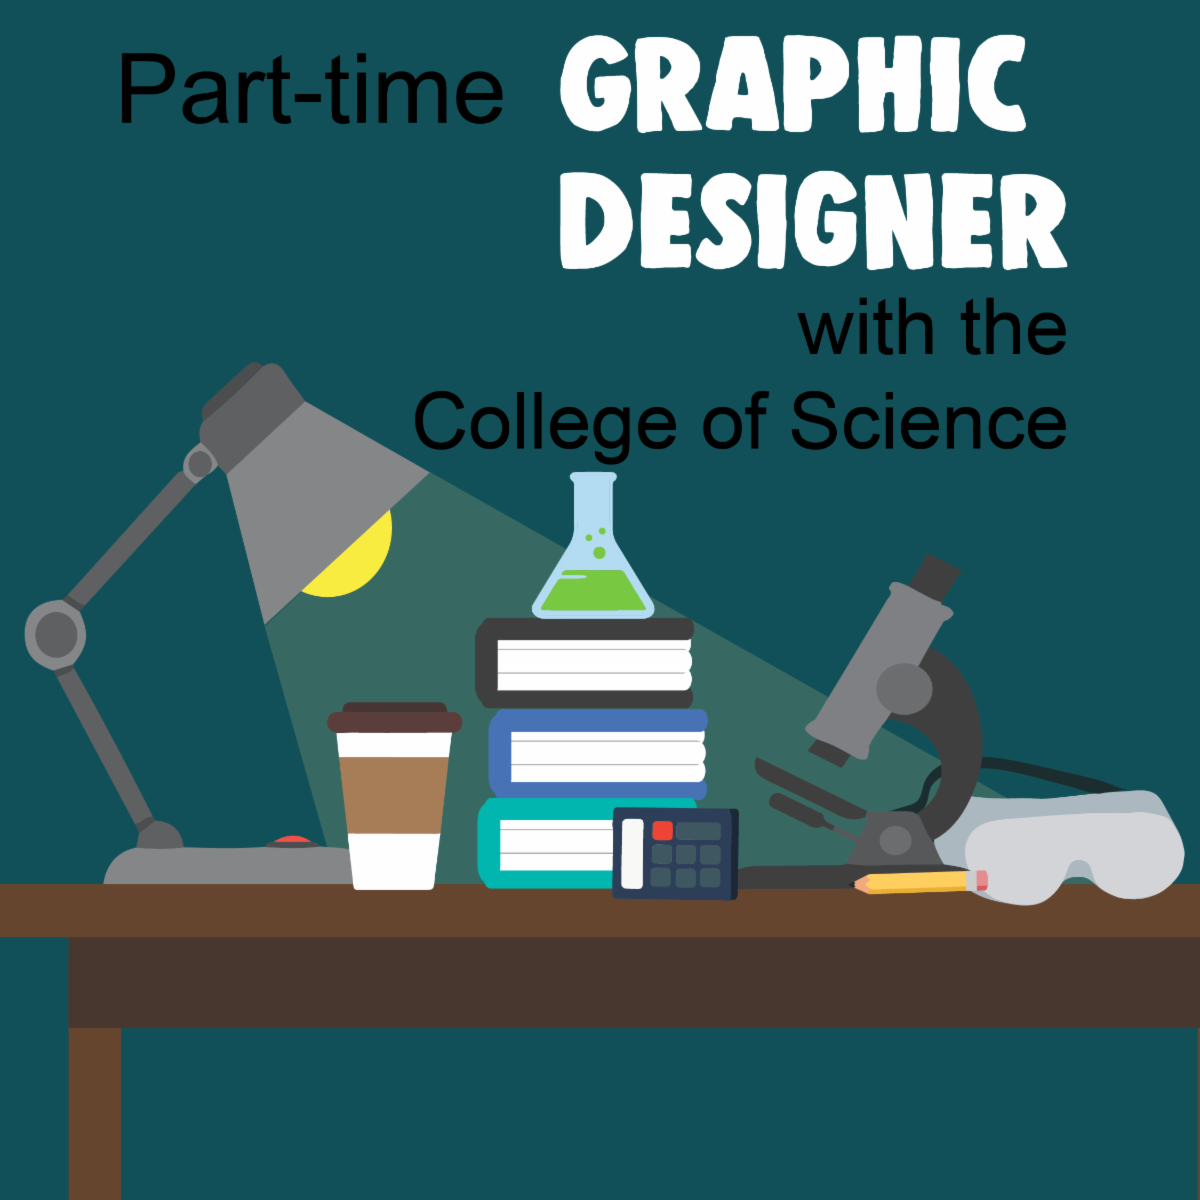 college of science graphic designer job posting